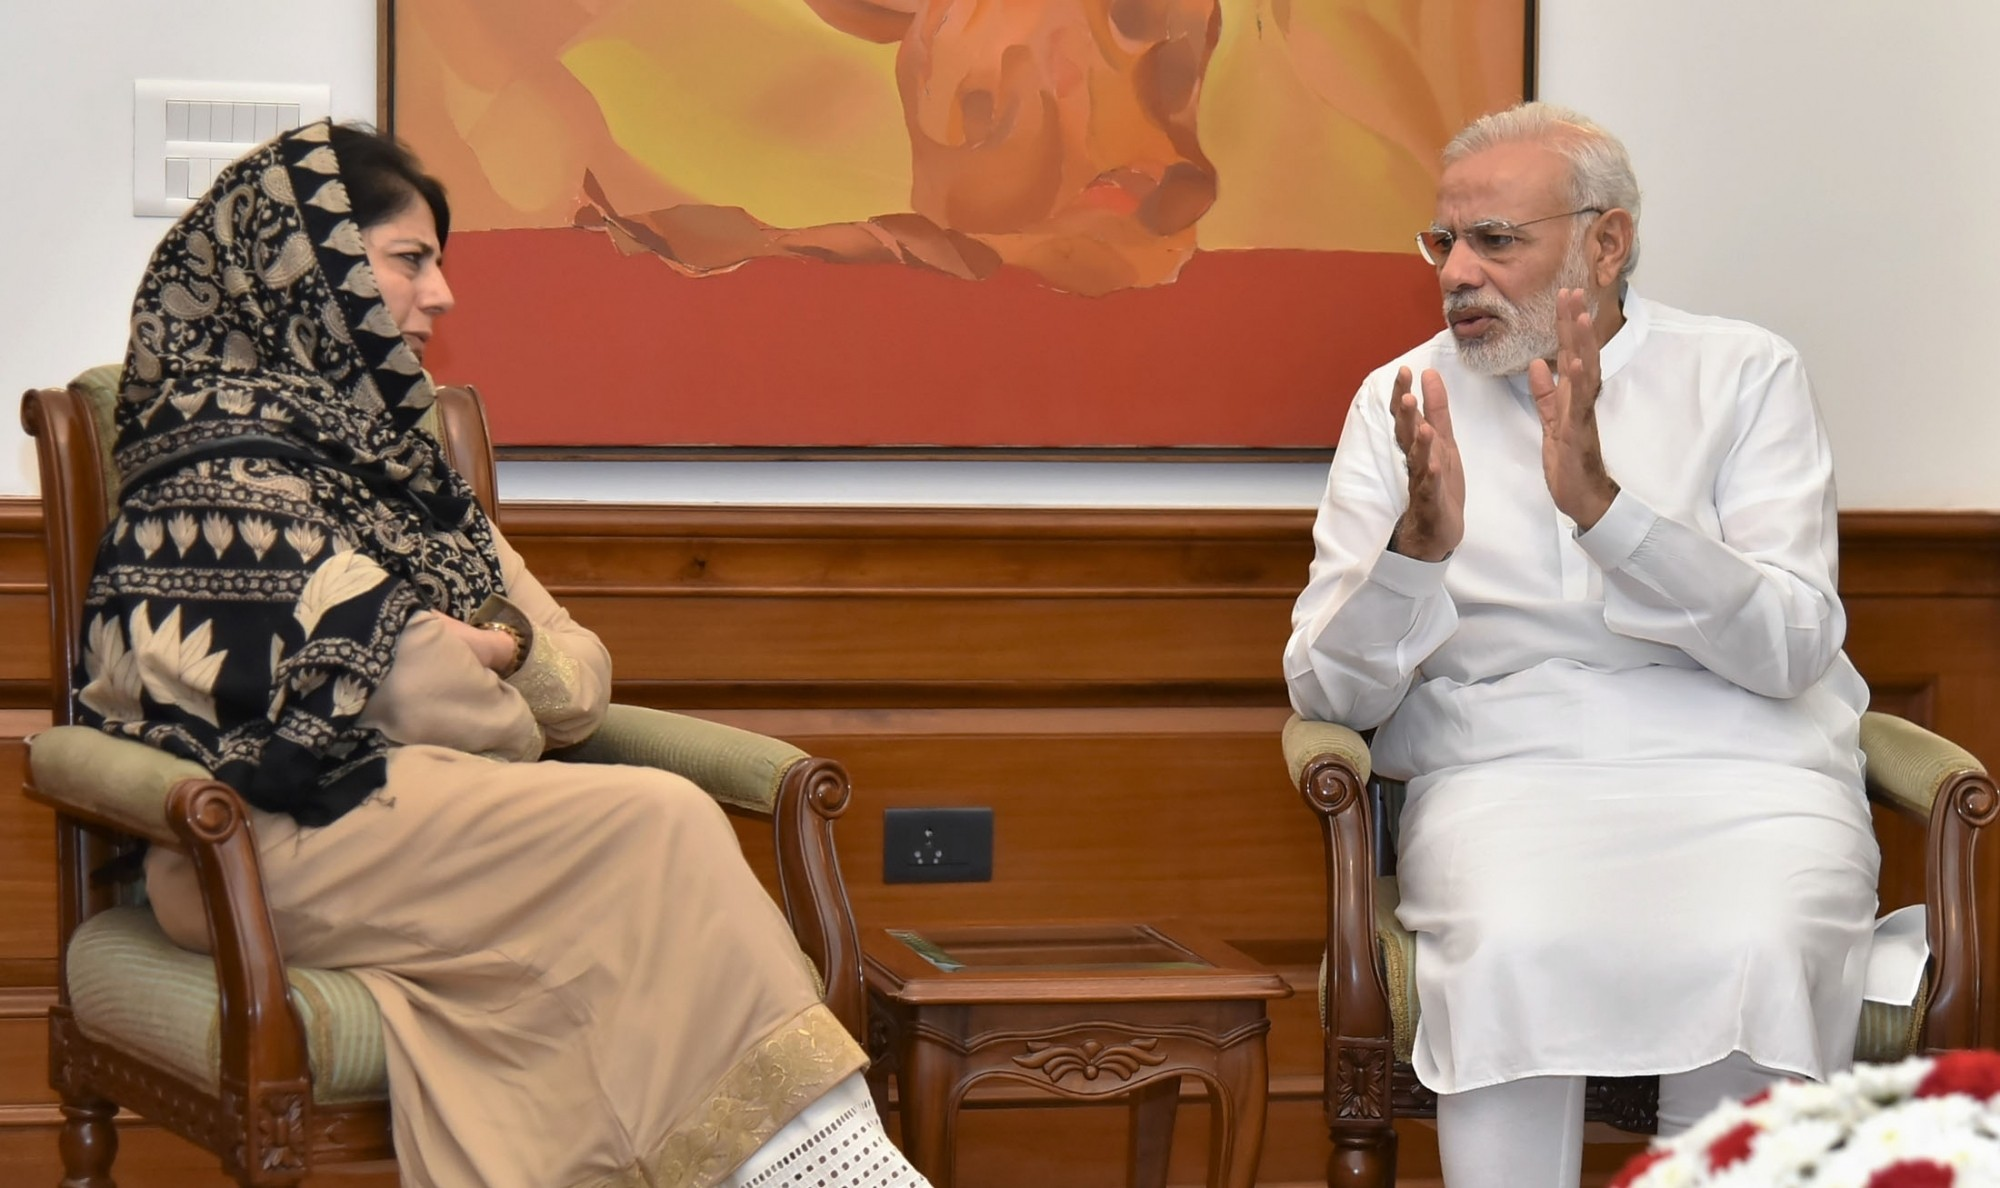 Chief Minister Mehbooba Mufti's meeting with Prime Minister Narendra last month led to speculation that Jammu and Kashmir may be in for a spell of governor's rule. Image credit: IANS